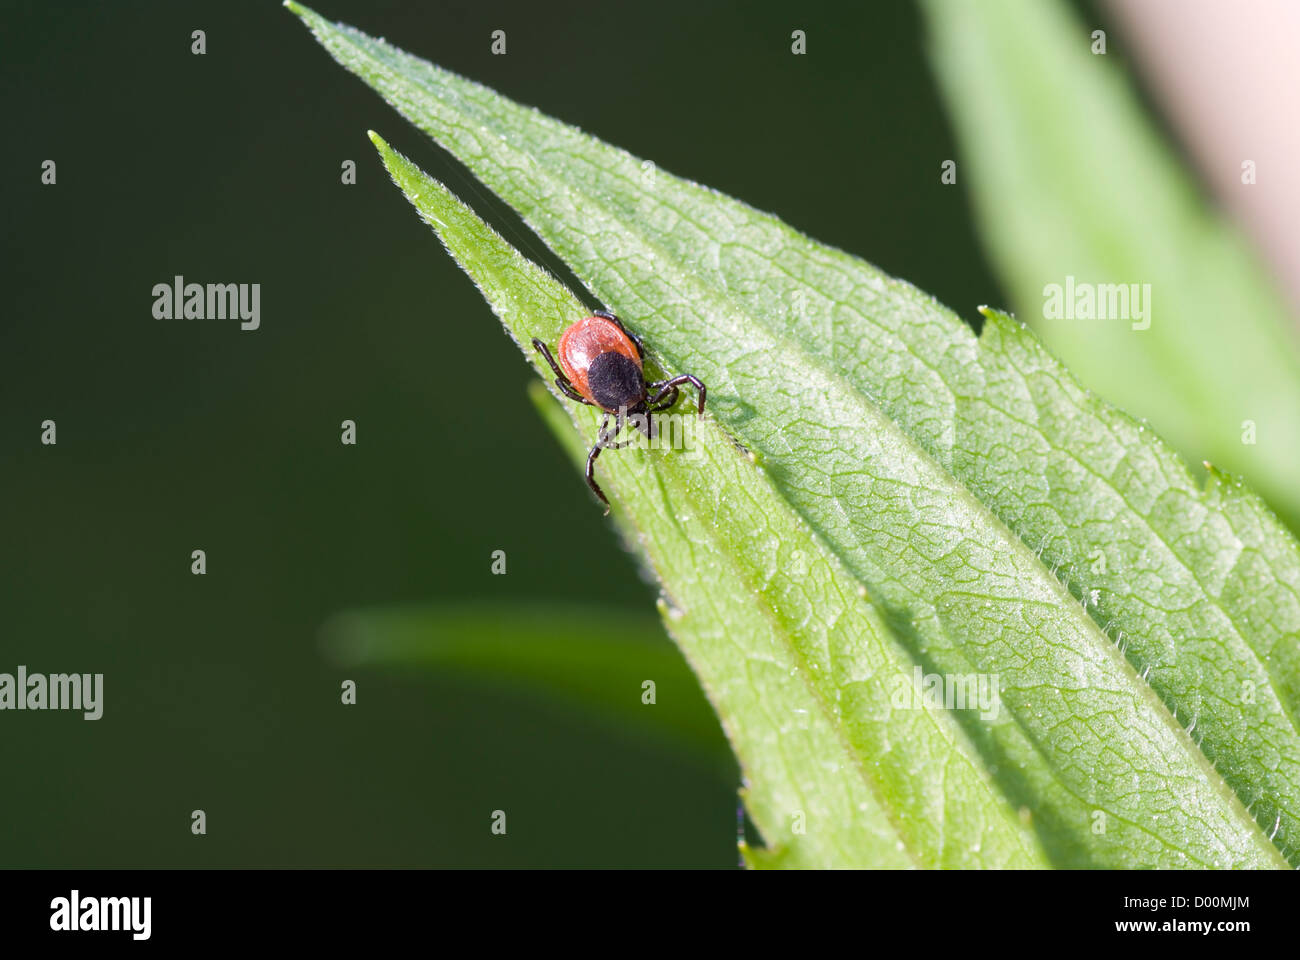 small hungry tick sits and waits on meal - Stock Image